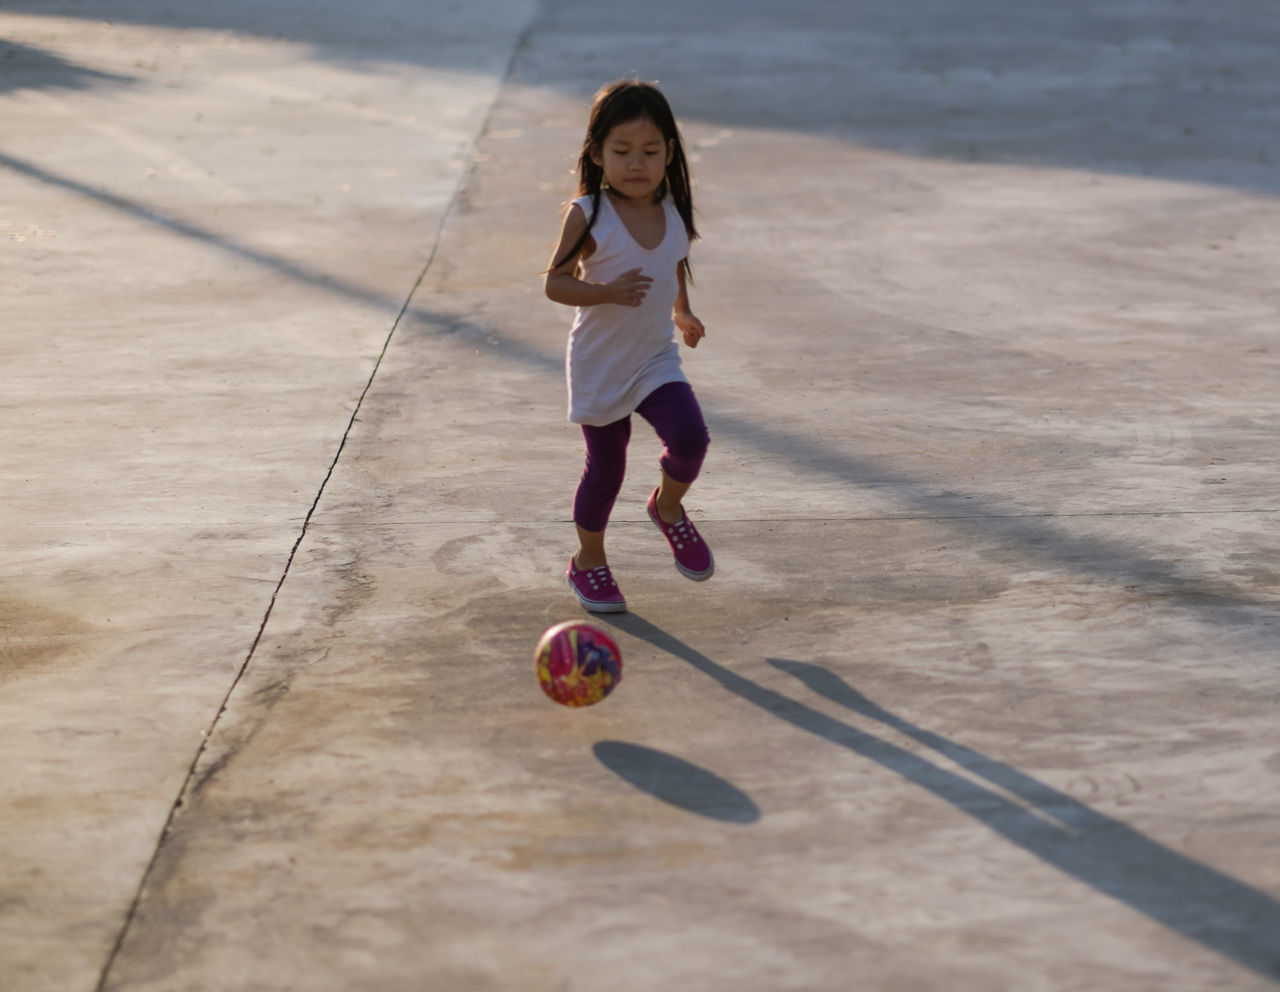 Activity Ball Casual Clothing Child Childhood Children Only City Life Concrete Floor Day Full Length Girl Happiness Leisure Activity Leisure Games One Boy Only One Person Outdoor Pursuit Outdoors People Playing Soccer Speed